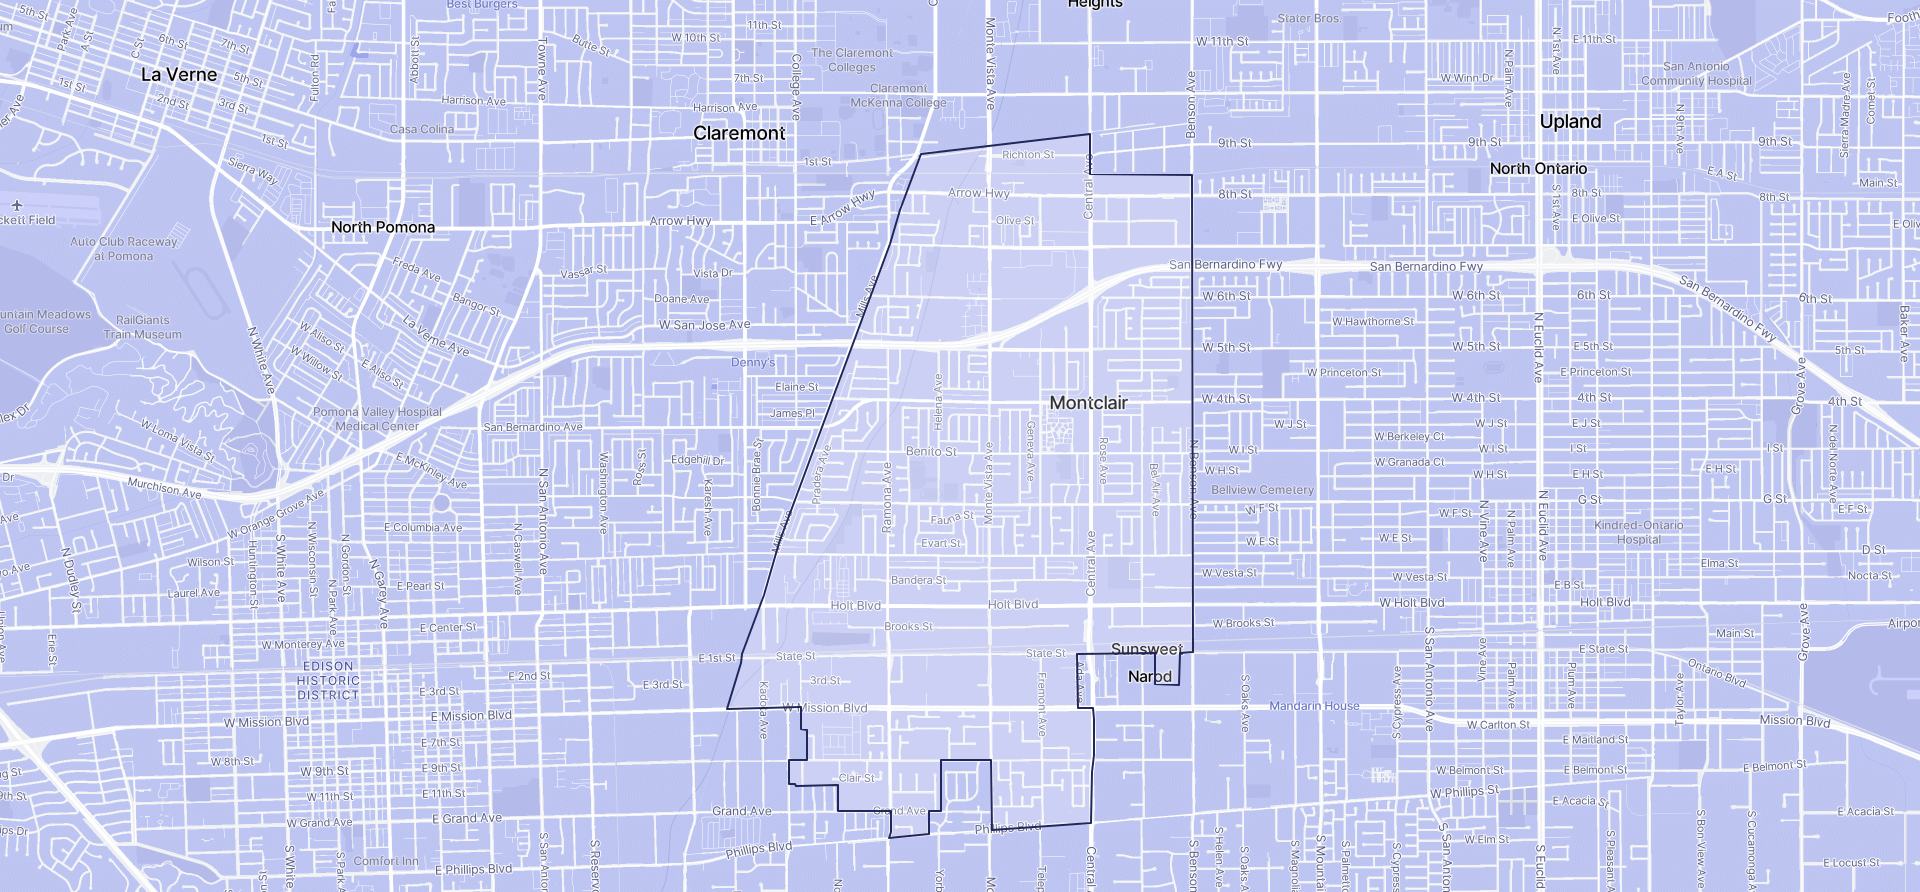 Image of Montclair boundaries on a map.